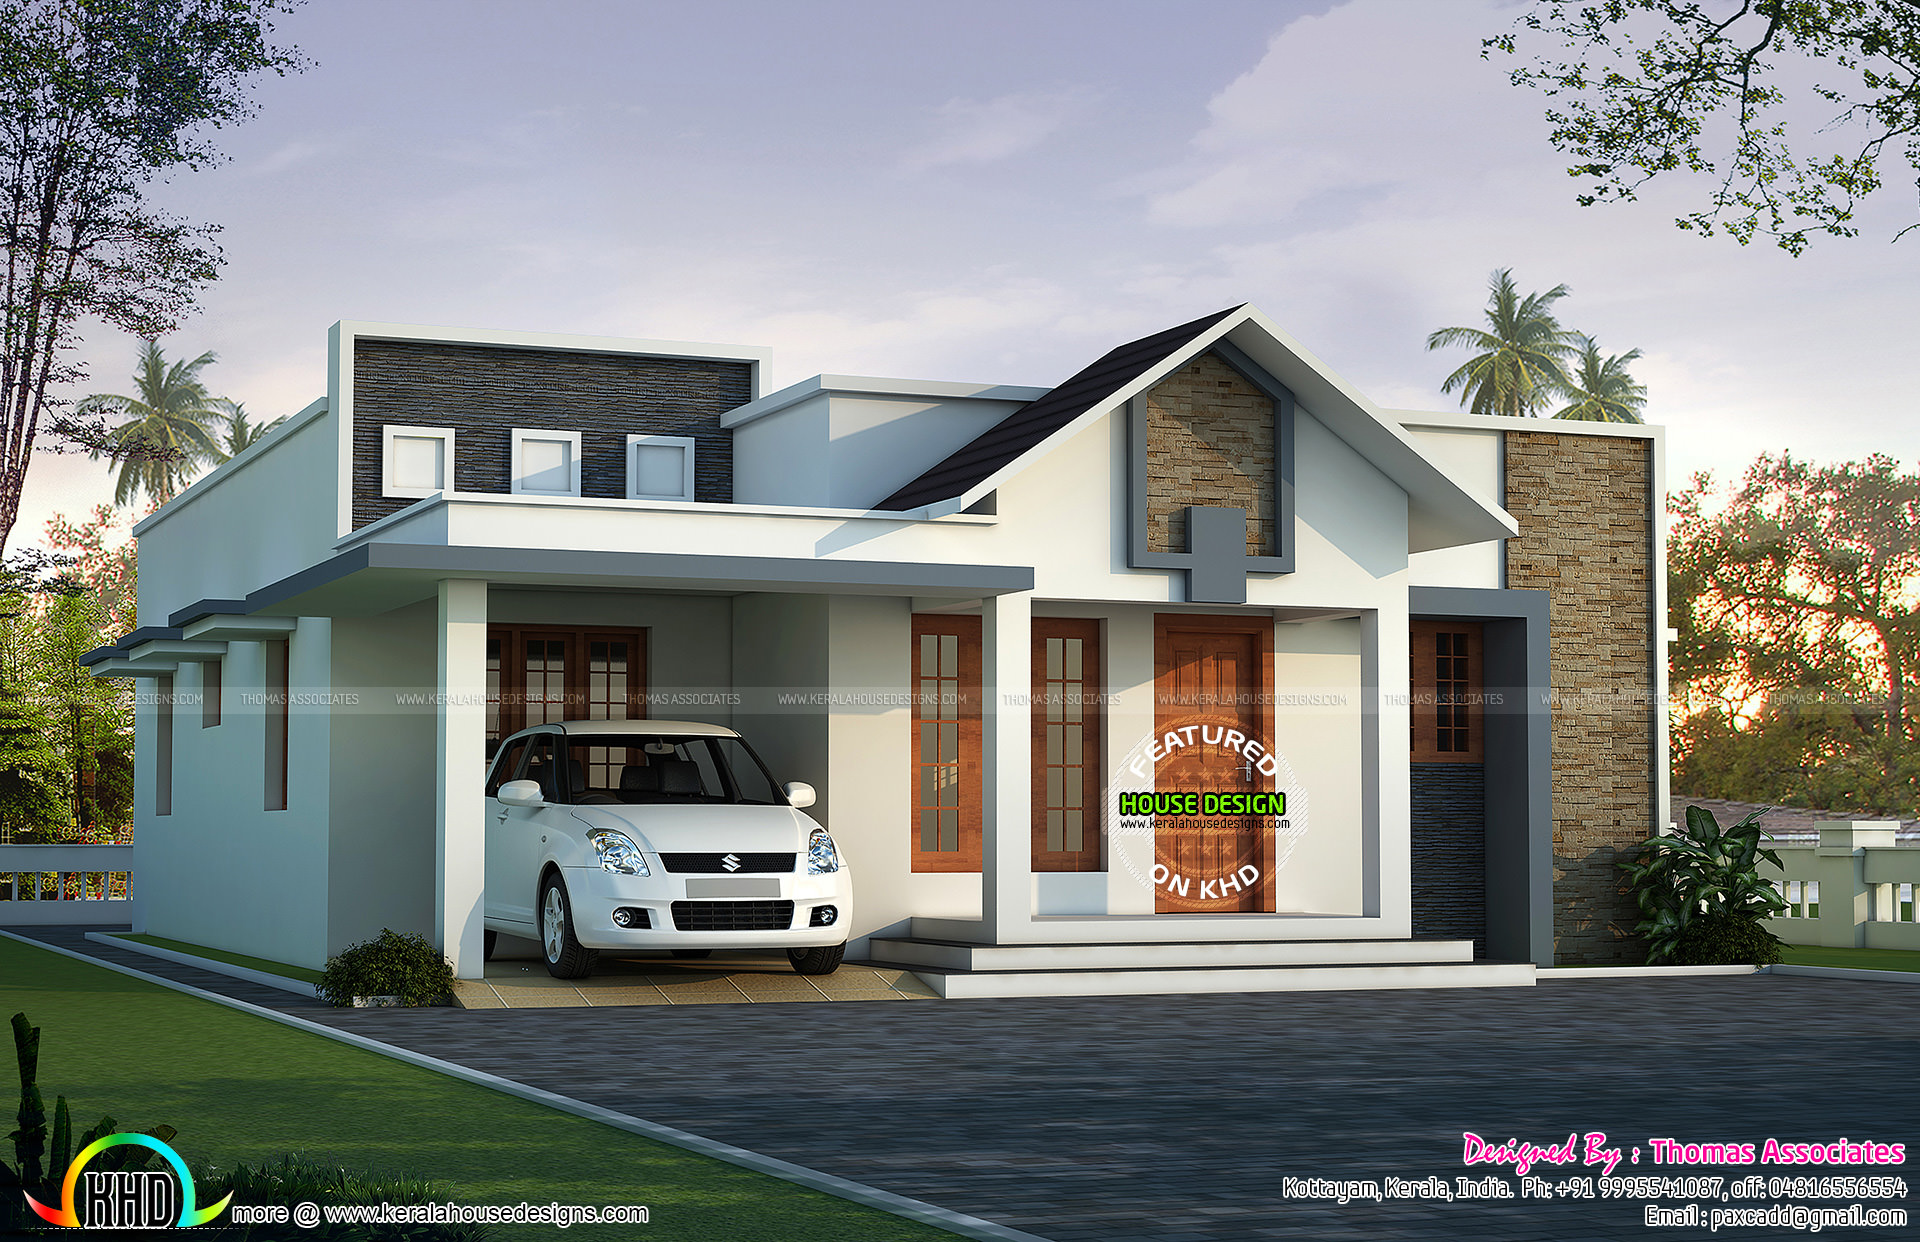 1800 sq ft 4 bed single floor villa kerala home design for 1800 sq ft indian house plans